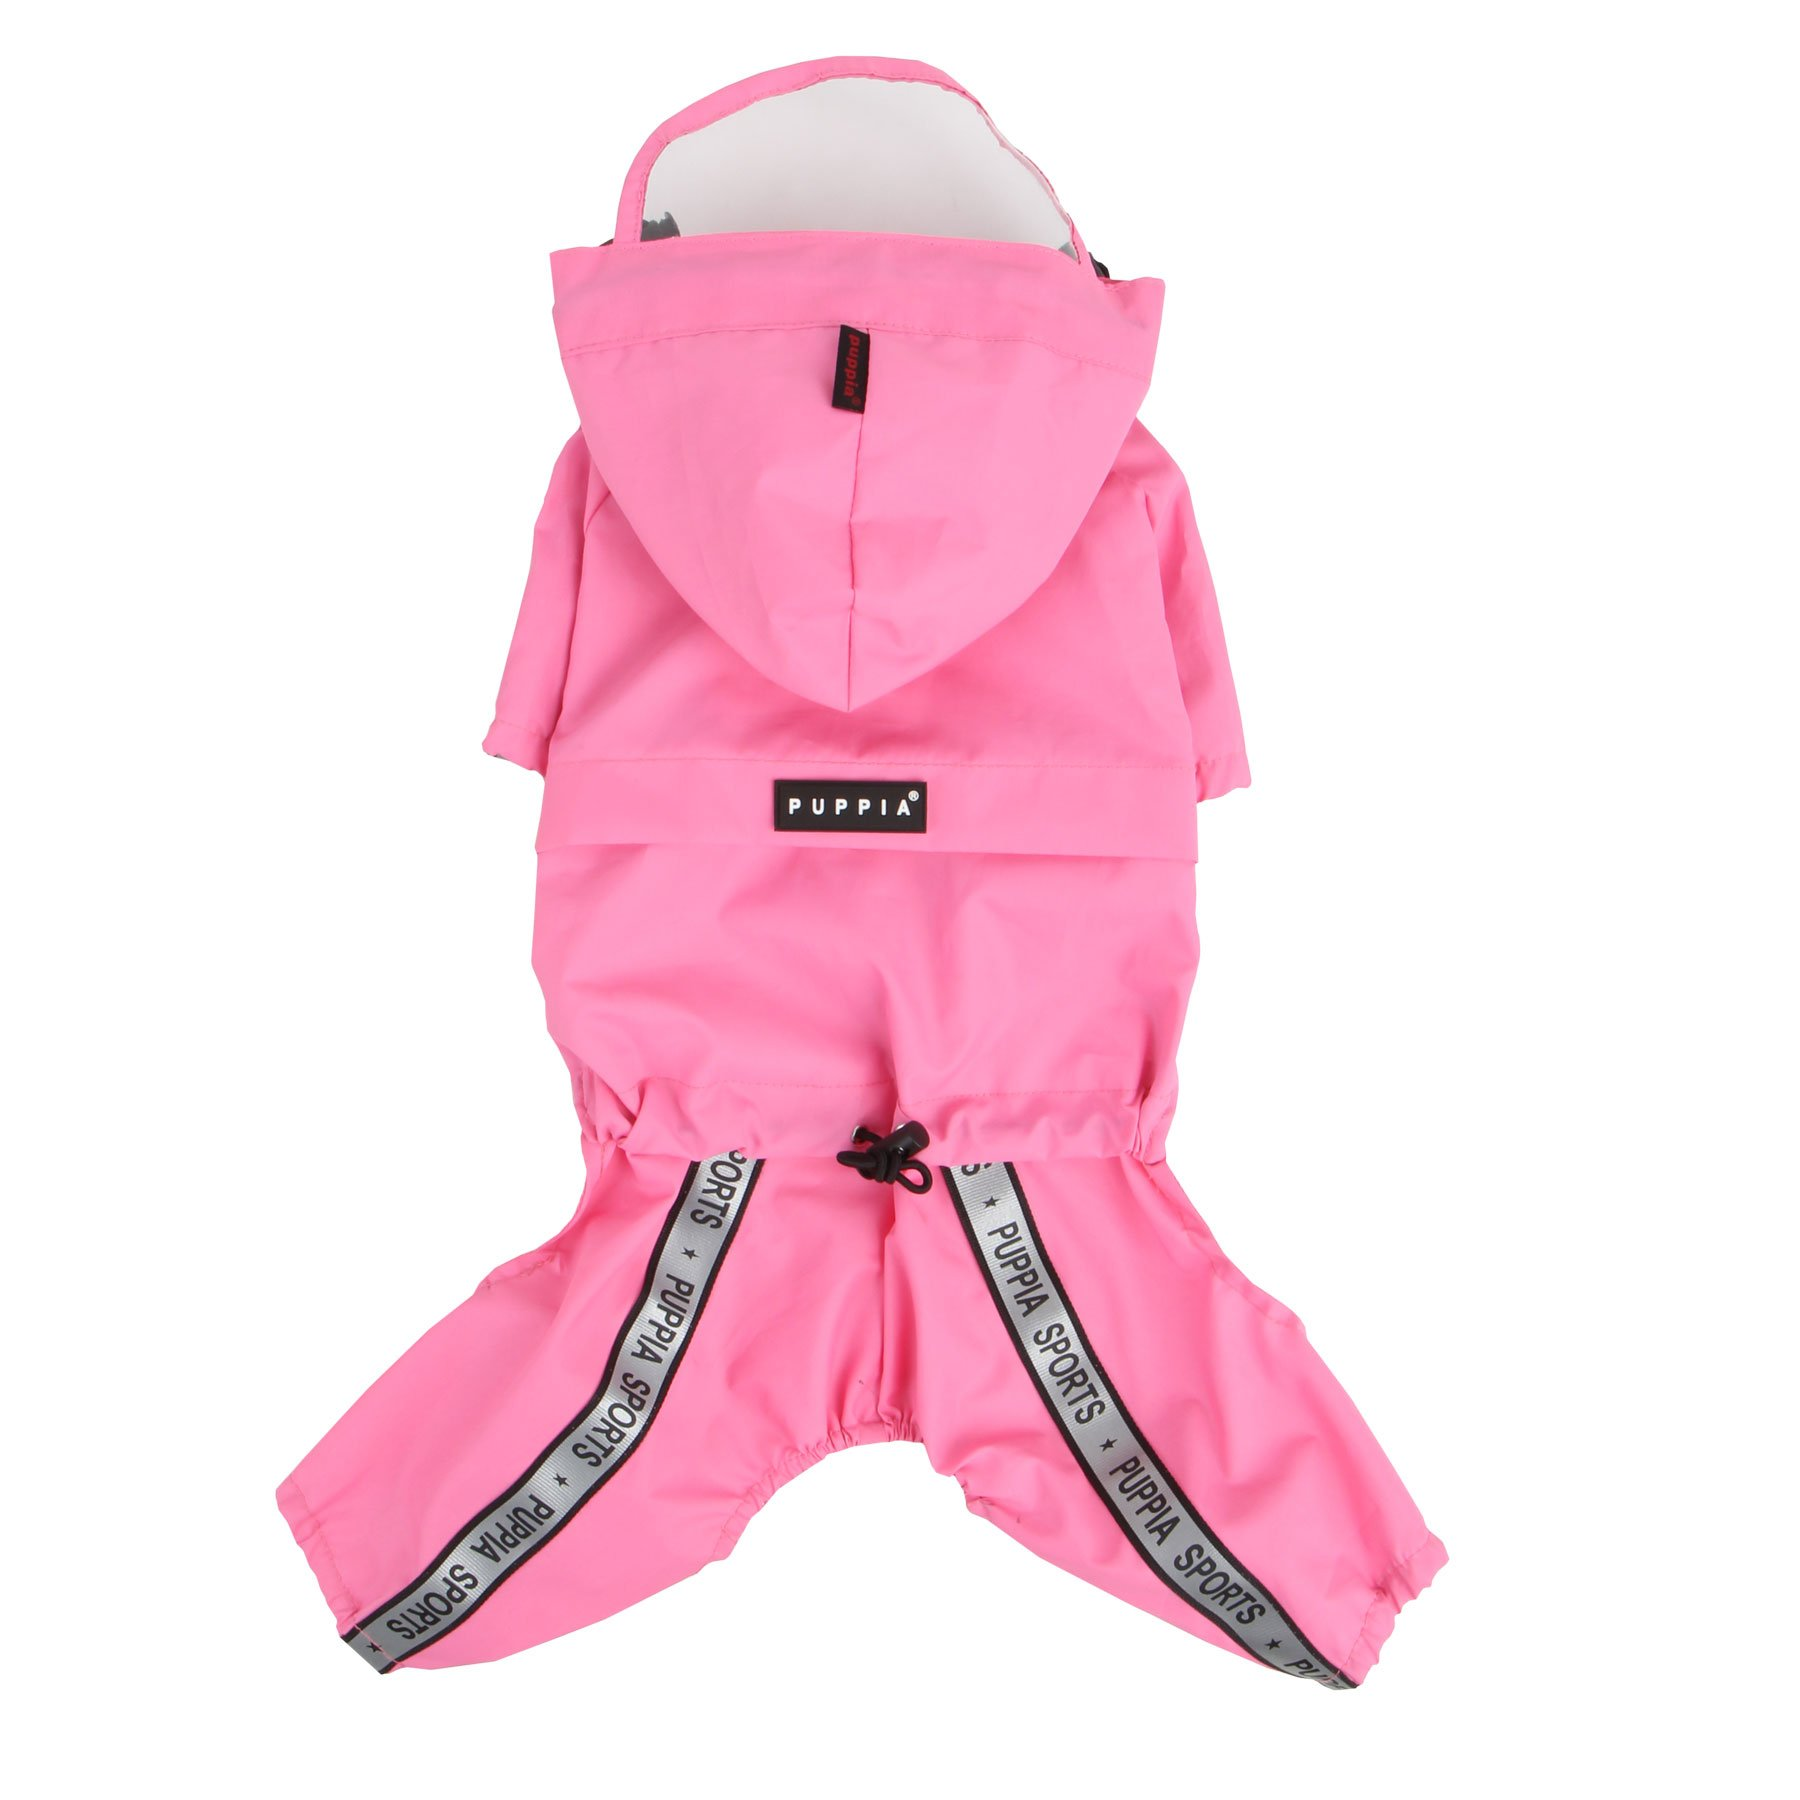 Authentic Puppia Race Track Hooded Jumpsuit, Pink, Small